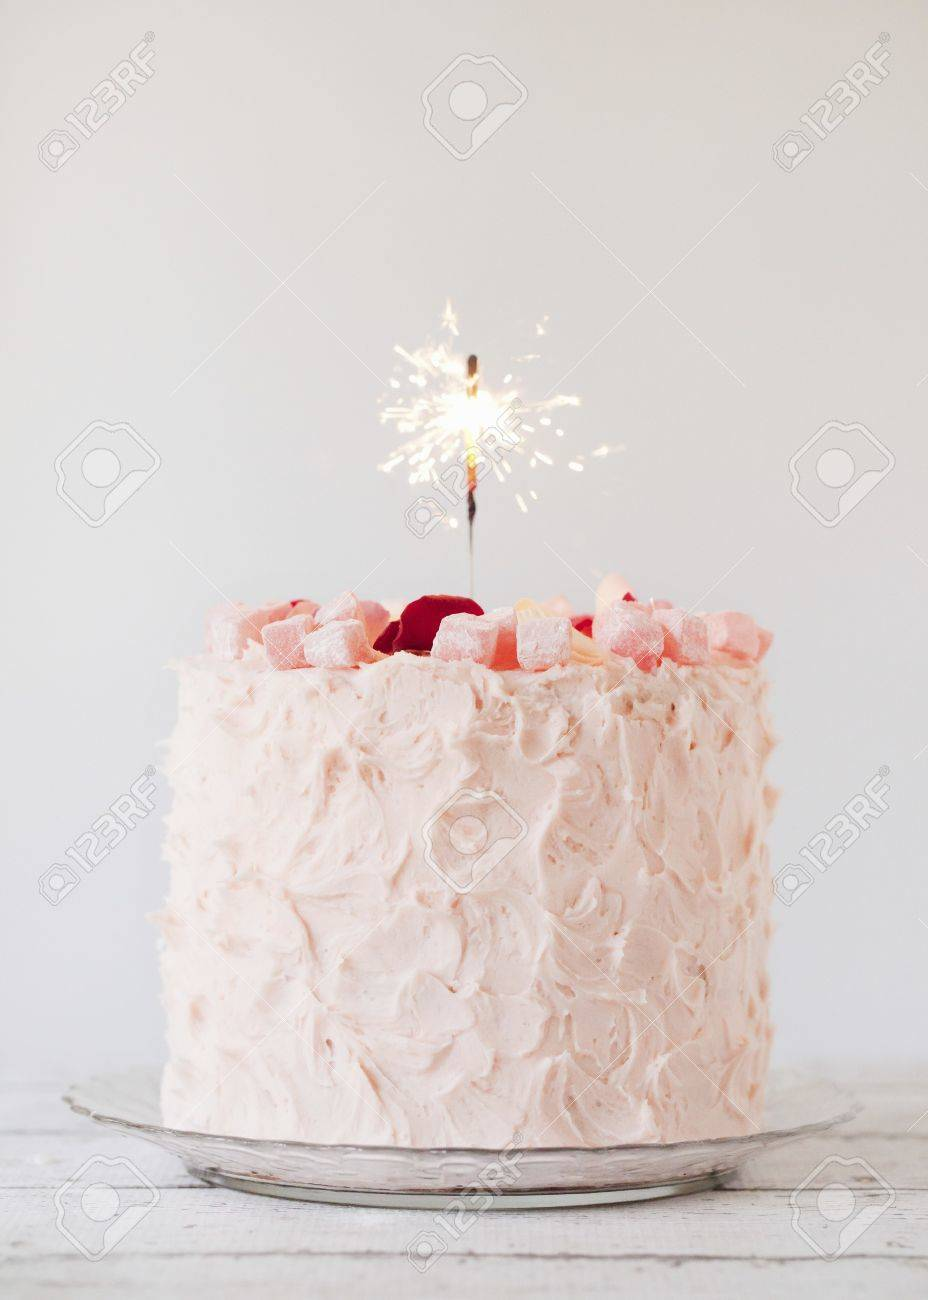 Excellent Turkish Delight Layer Cake With A Sparkler Candle Stock Photo Funny Birthday Cards Online Alyptdamsfinfo